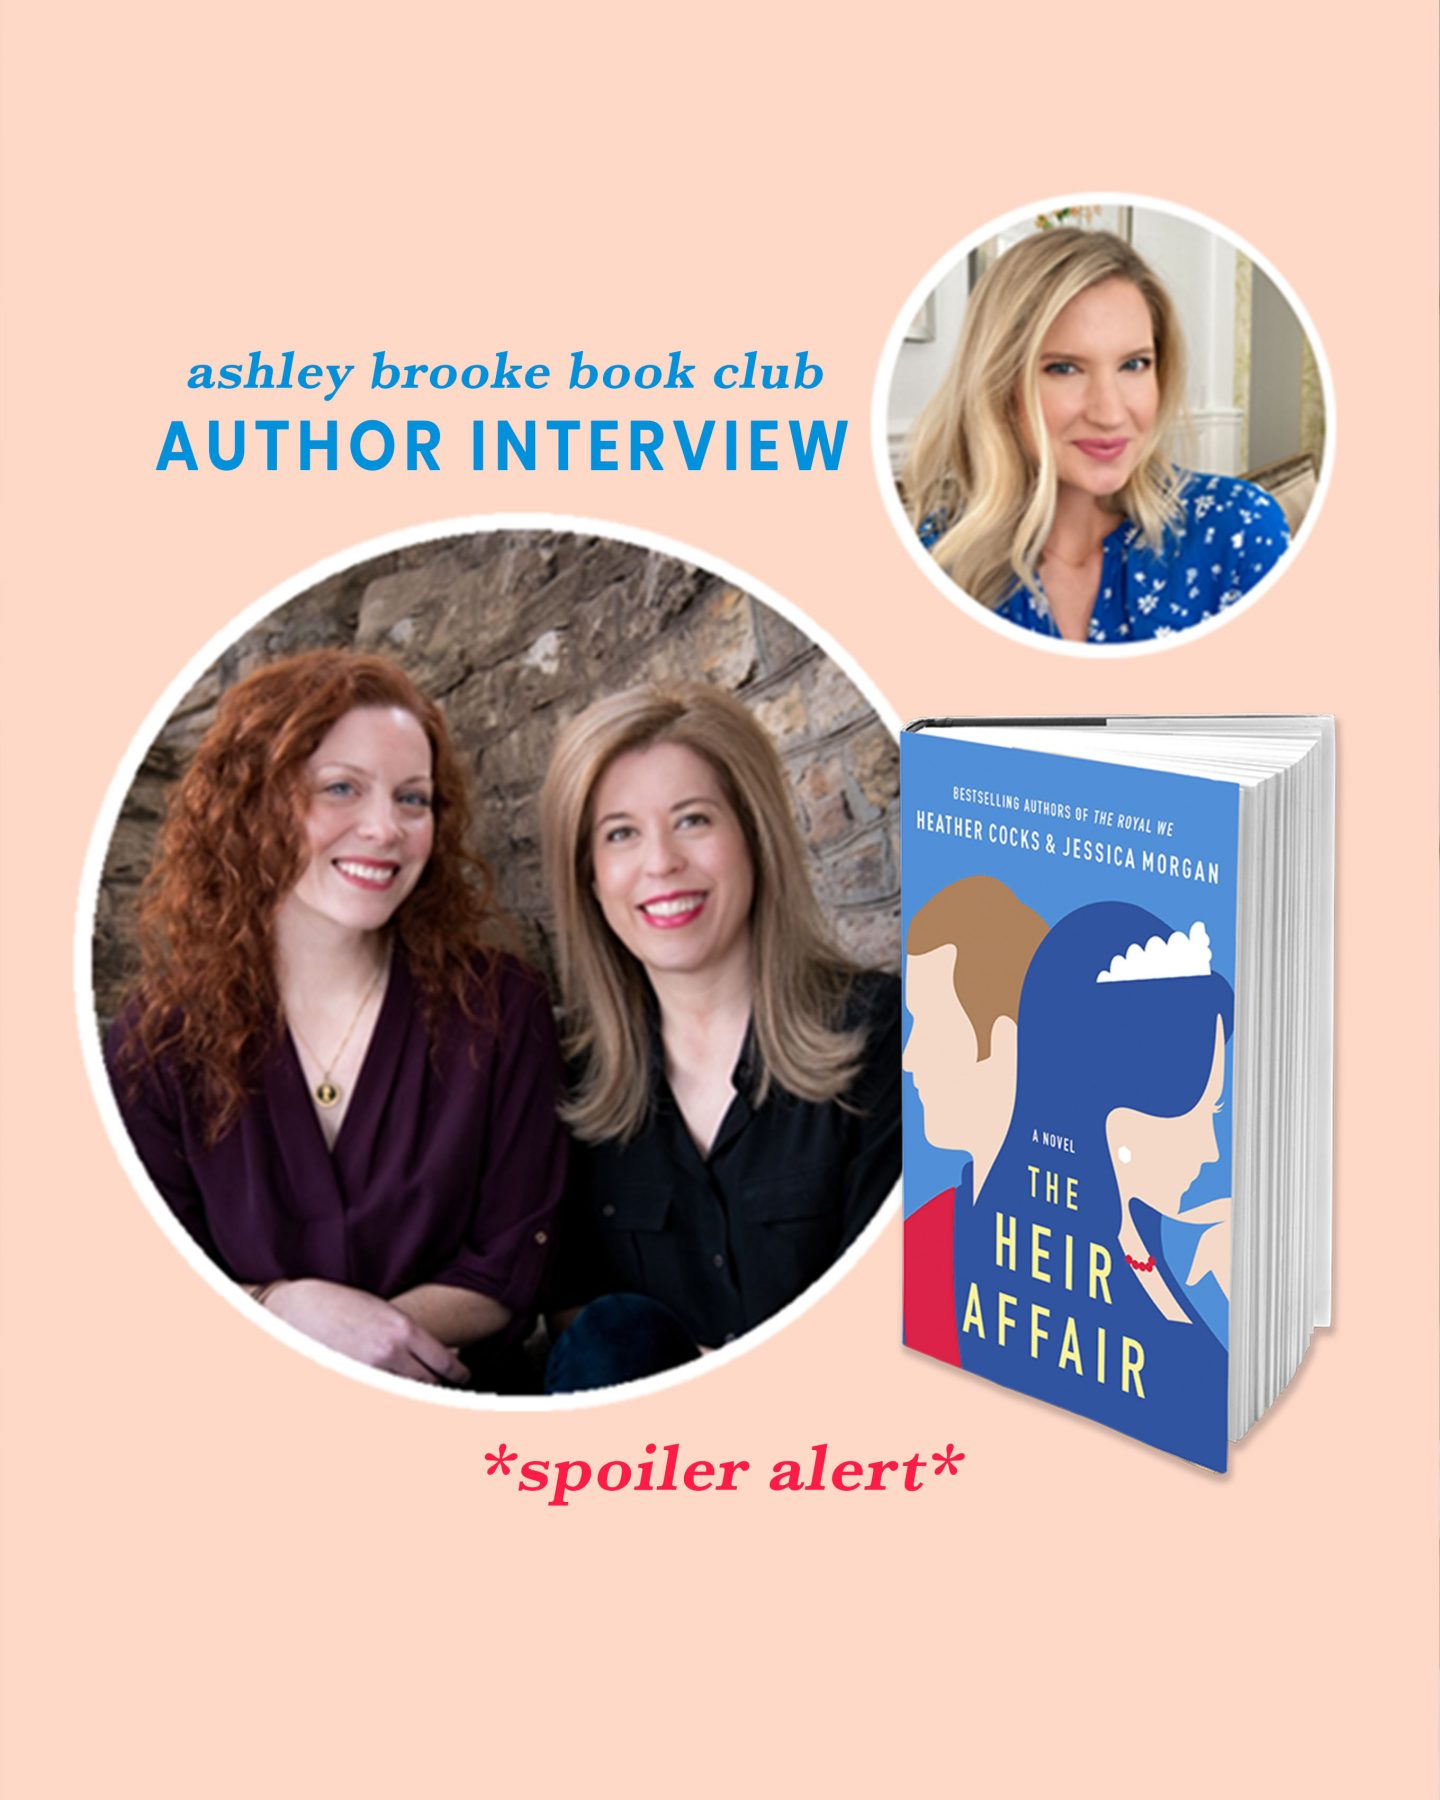 Ashley Brooke's phone interview with Heather Cocks and Jessica Morgan, authors of The Heir Affair and The Royal We.